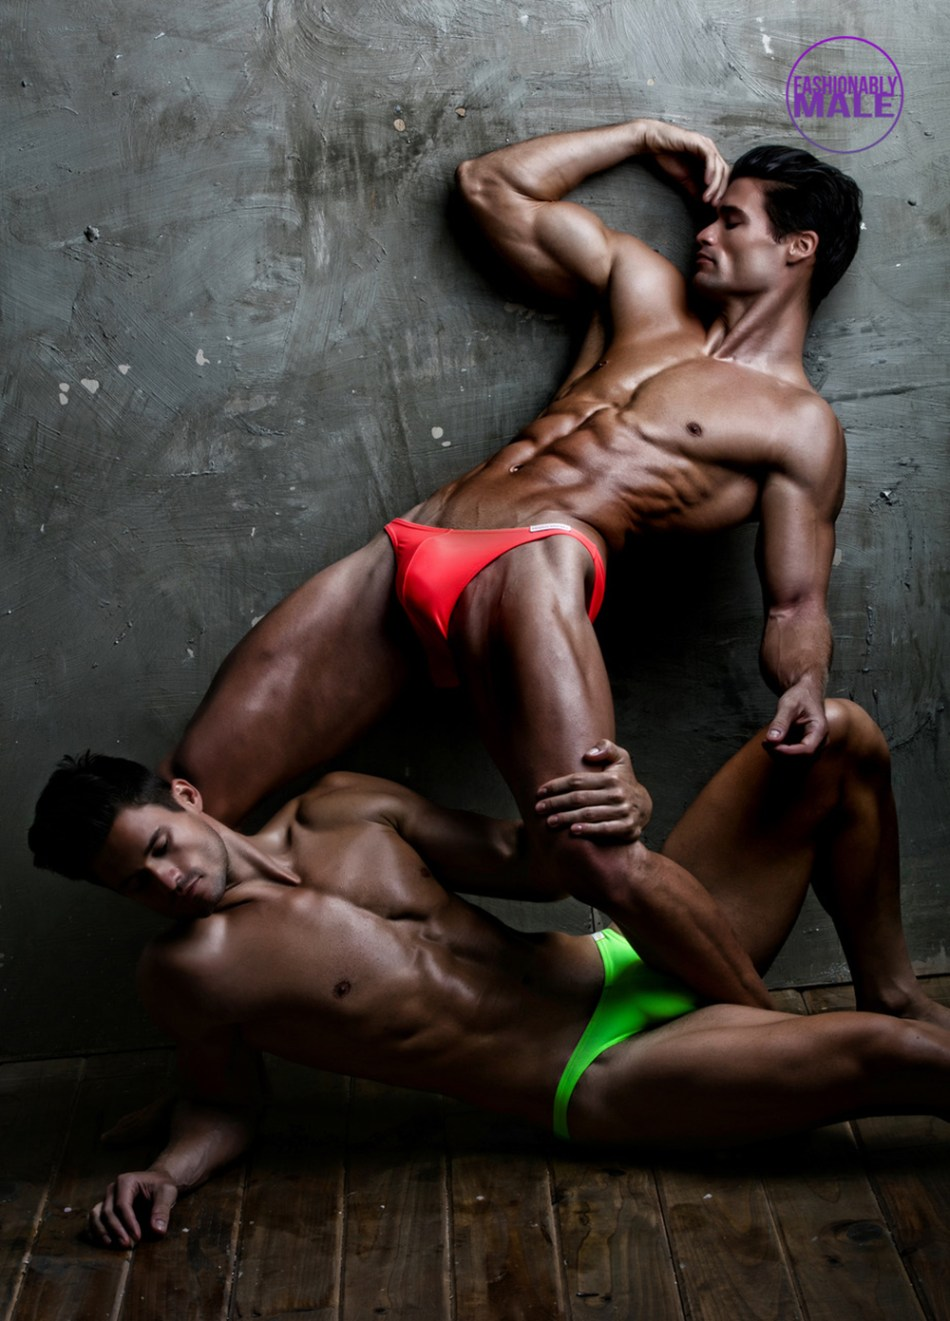 Today Featuring #HortonedaTwins by Joan Crisol - Exclusive